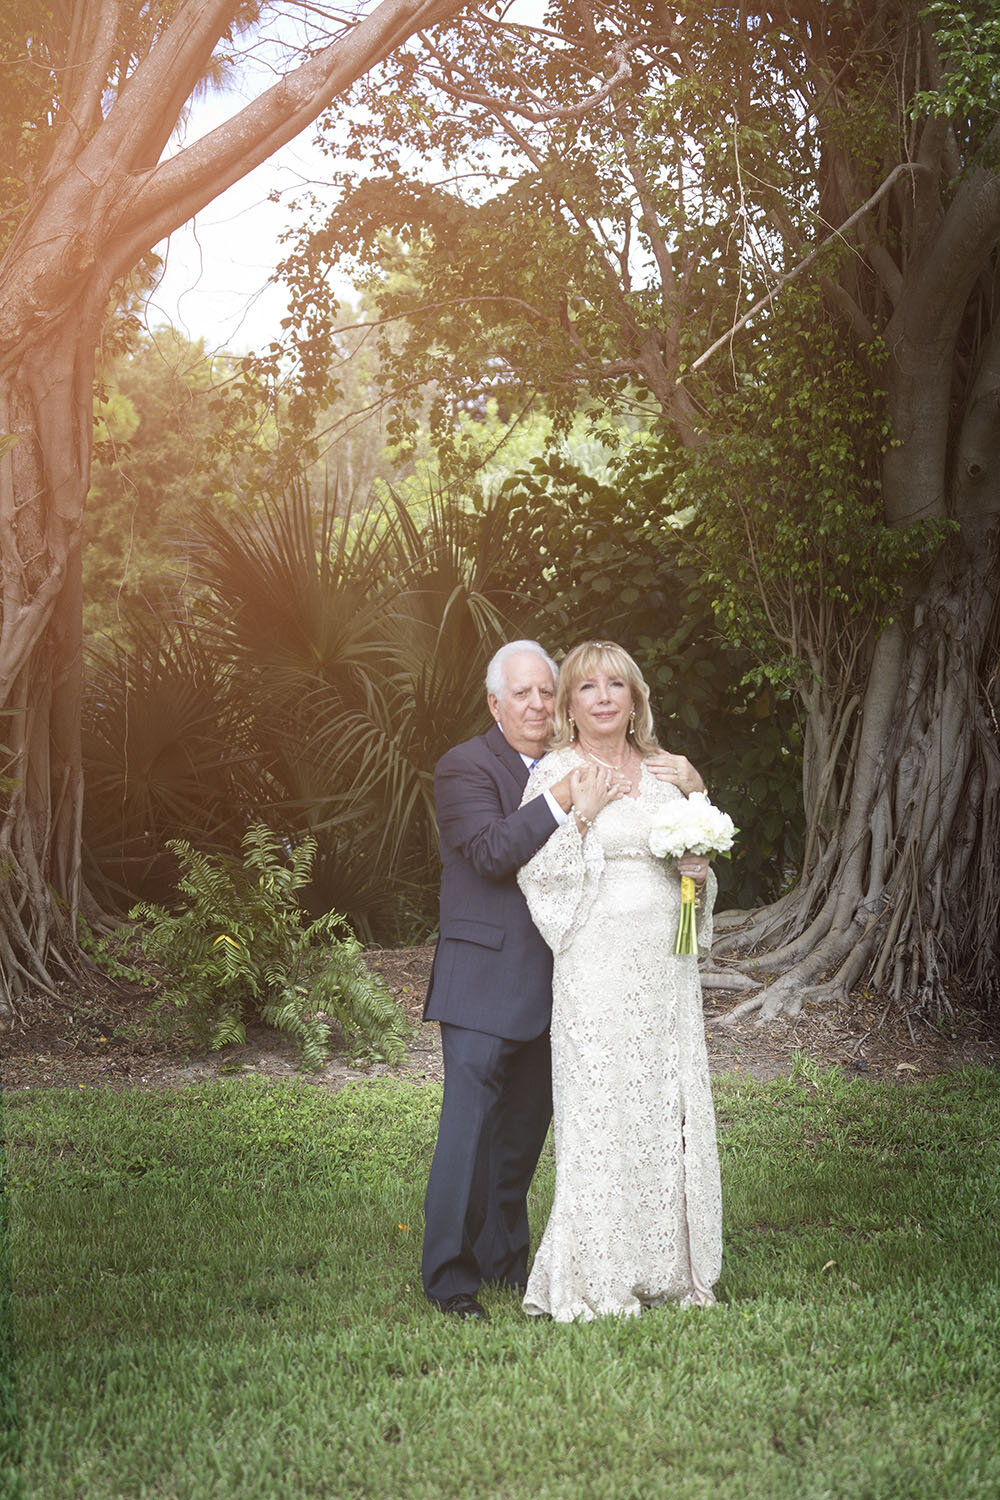 Palm Beach Gardens Floridawedding photography older couple - 32.jpg